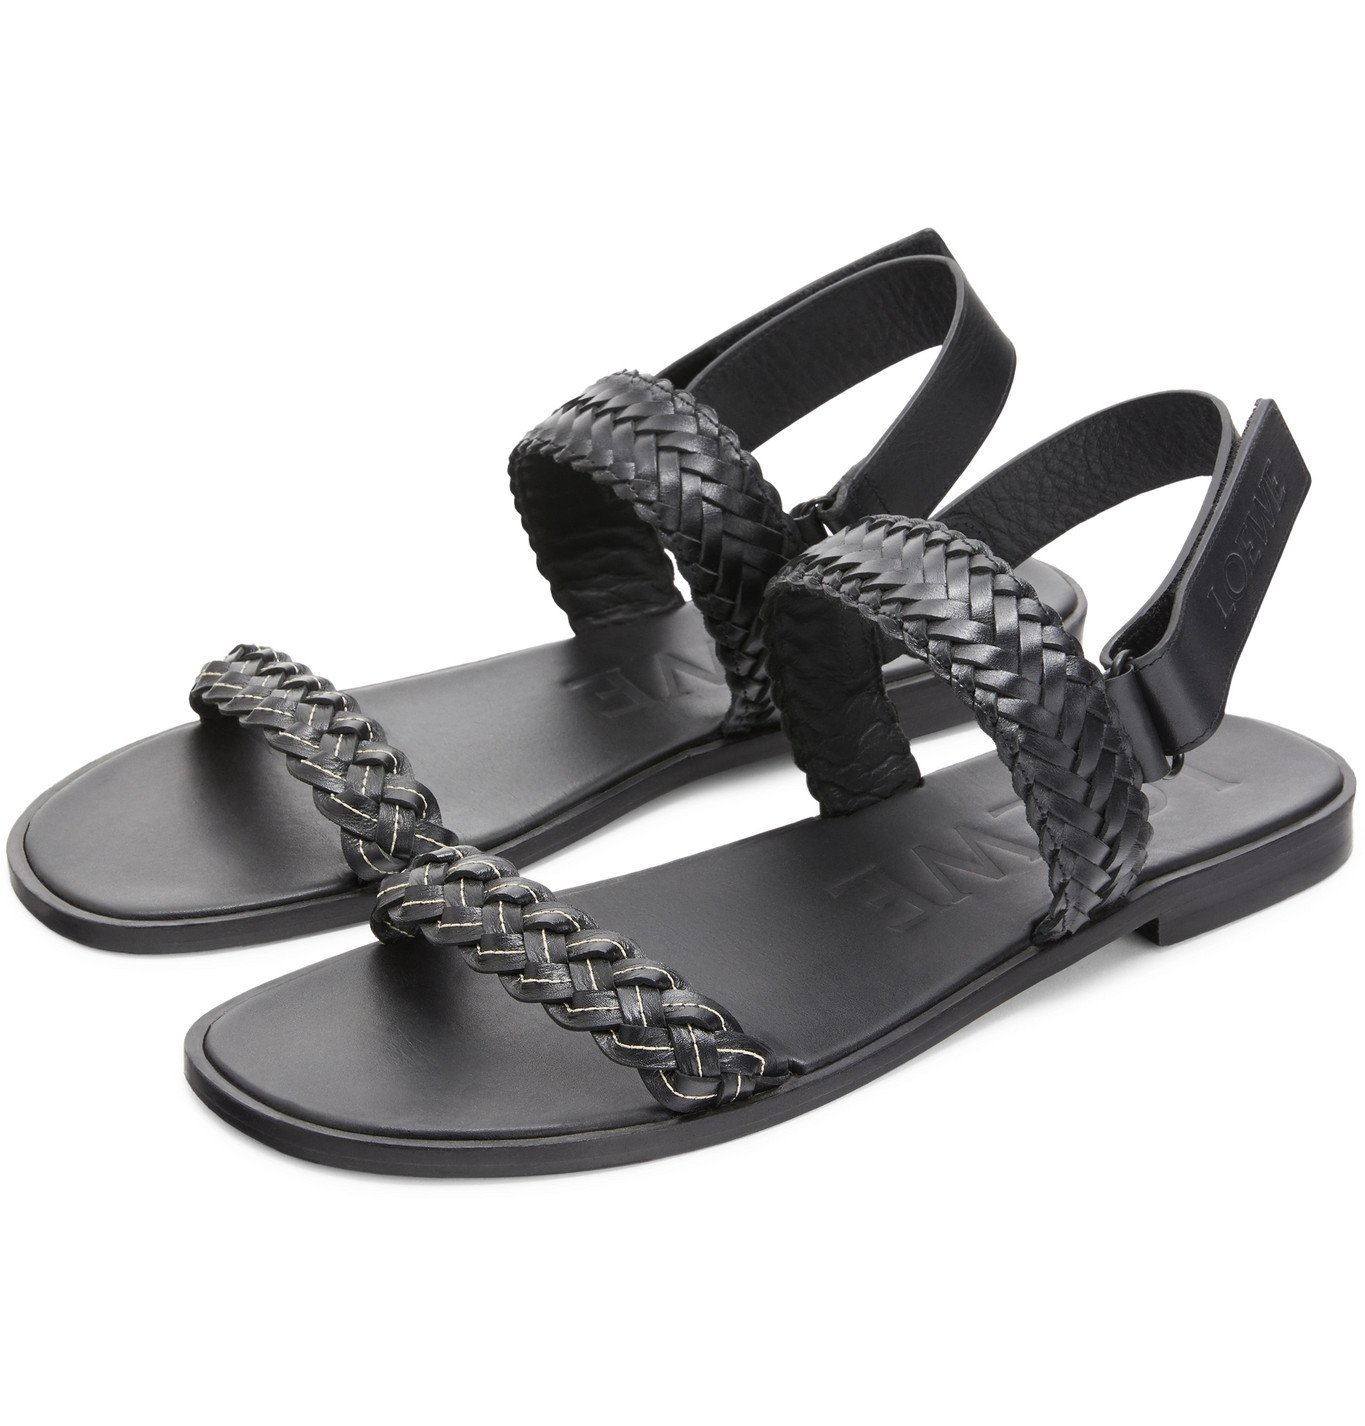 Photo: Loewe - Paula's Ibiza Braided Leather Sandals - Black